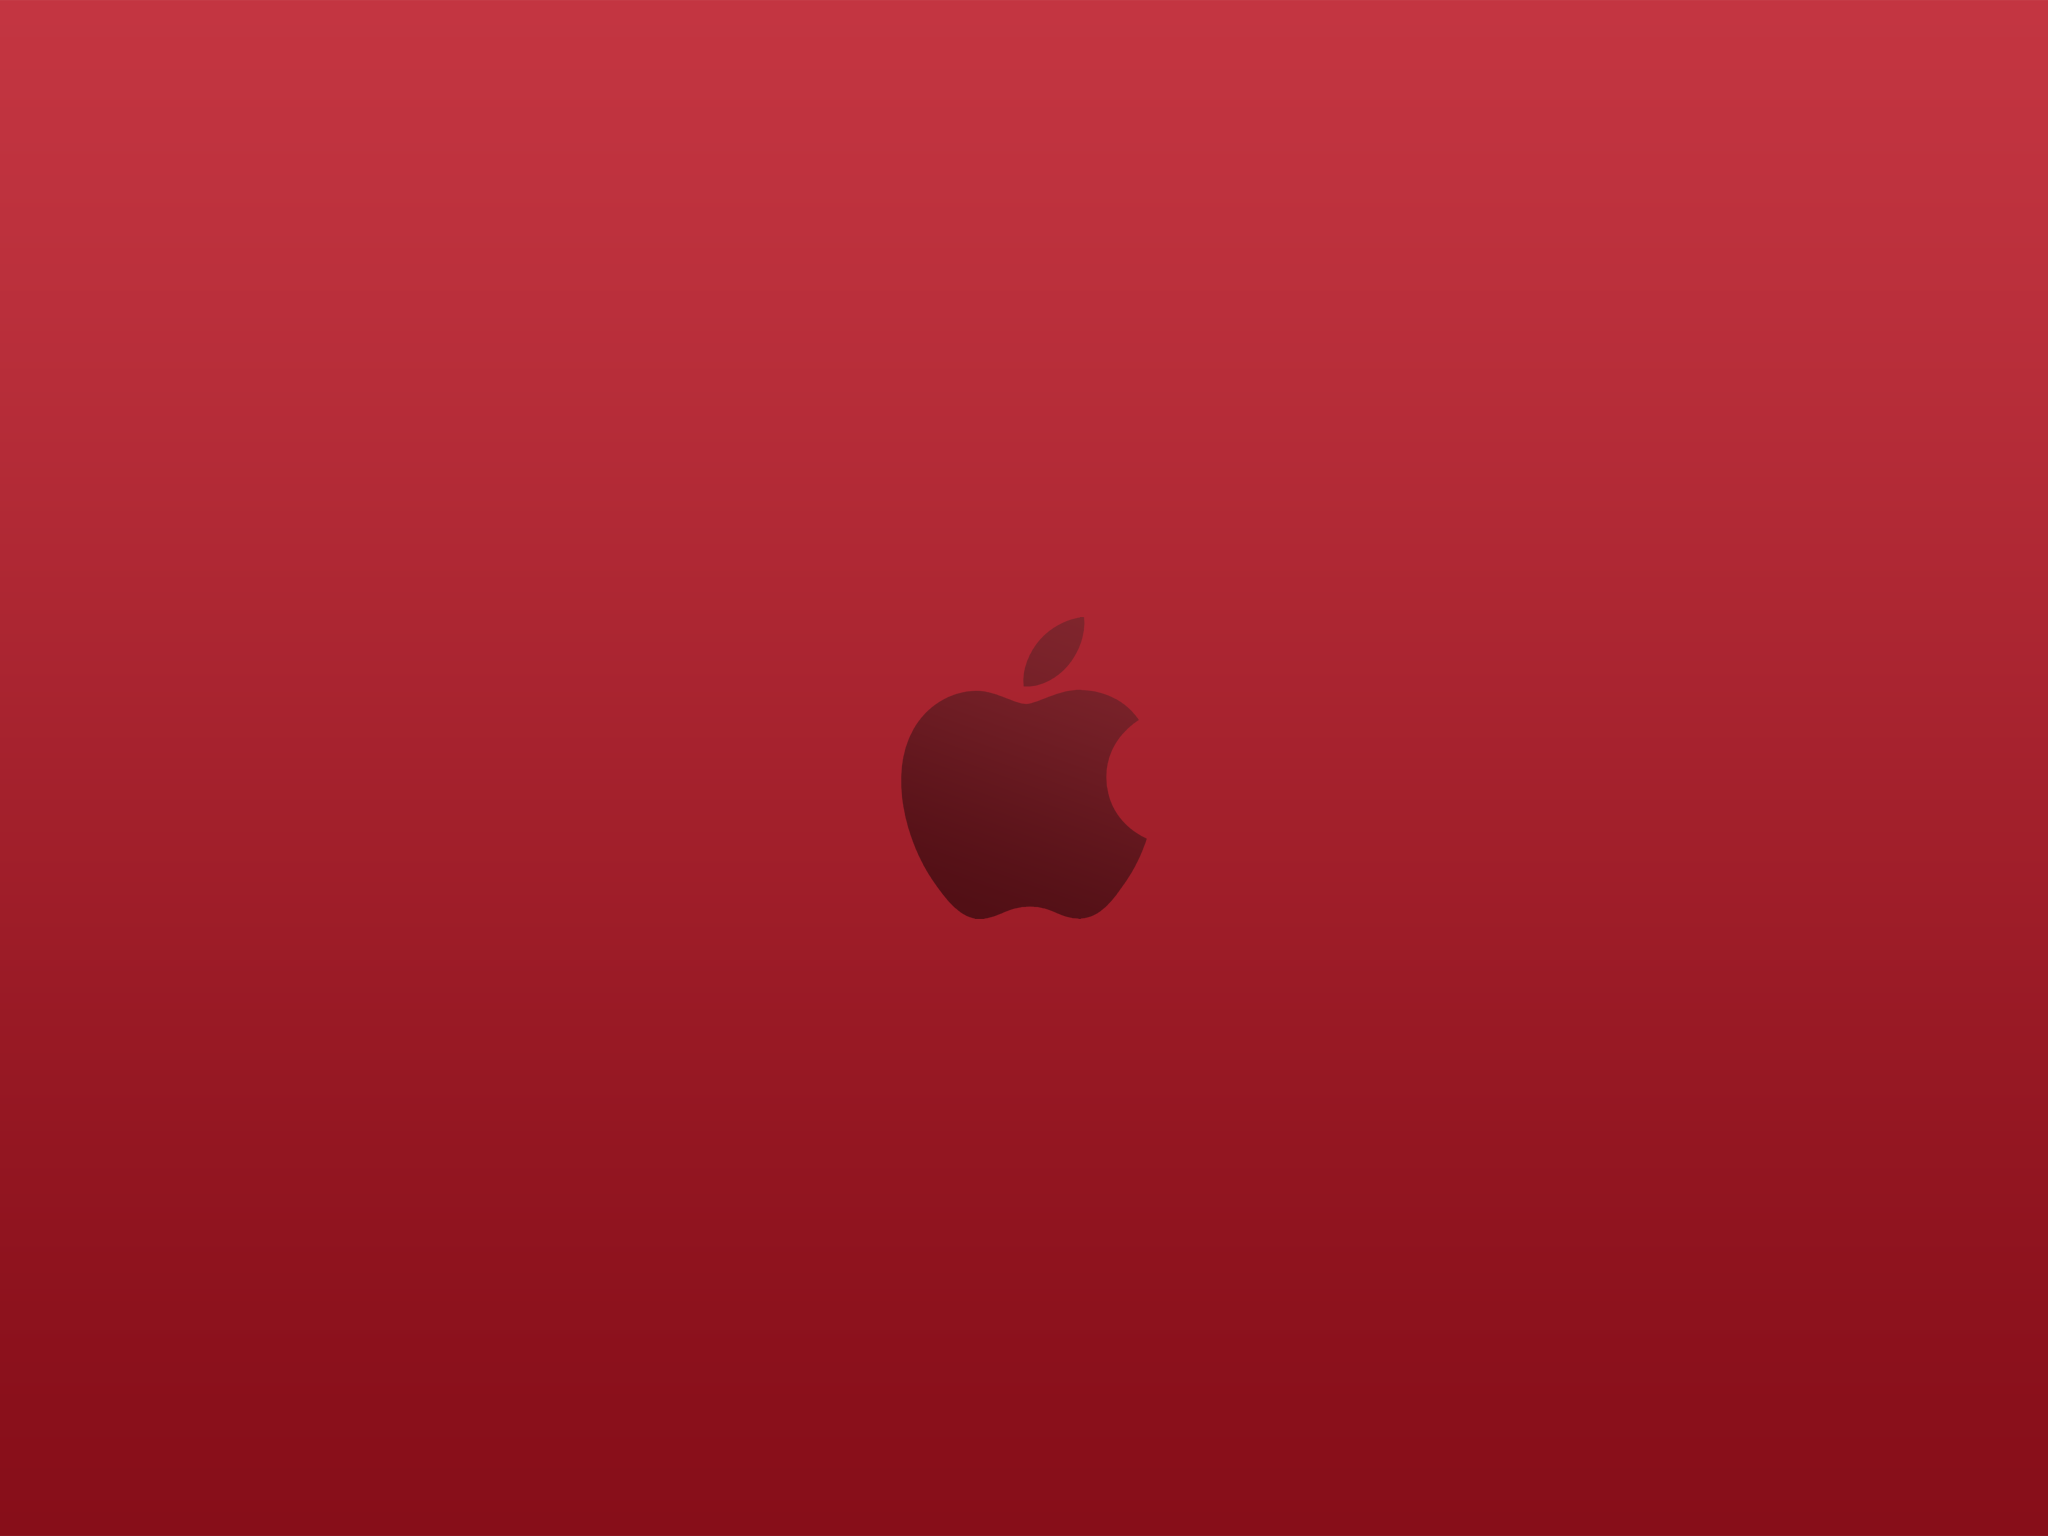 Apple logo Product (RED) Wallpaper